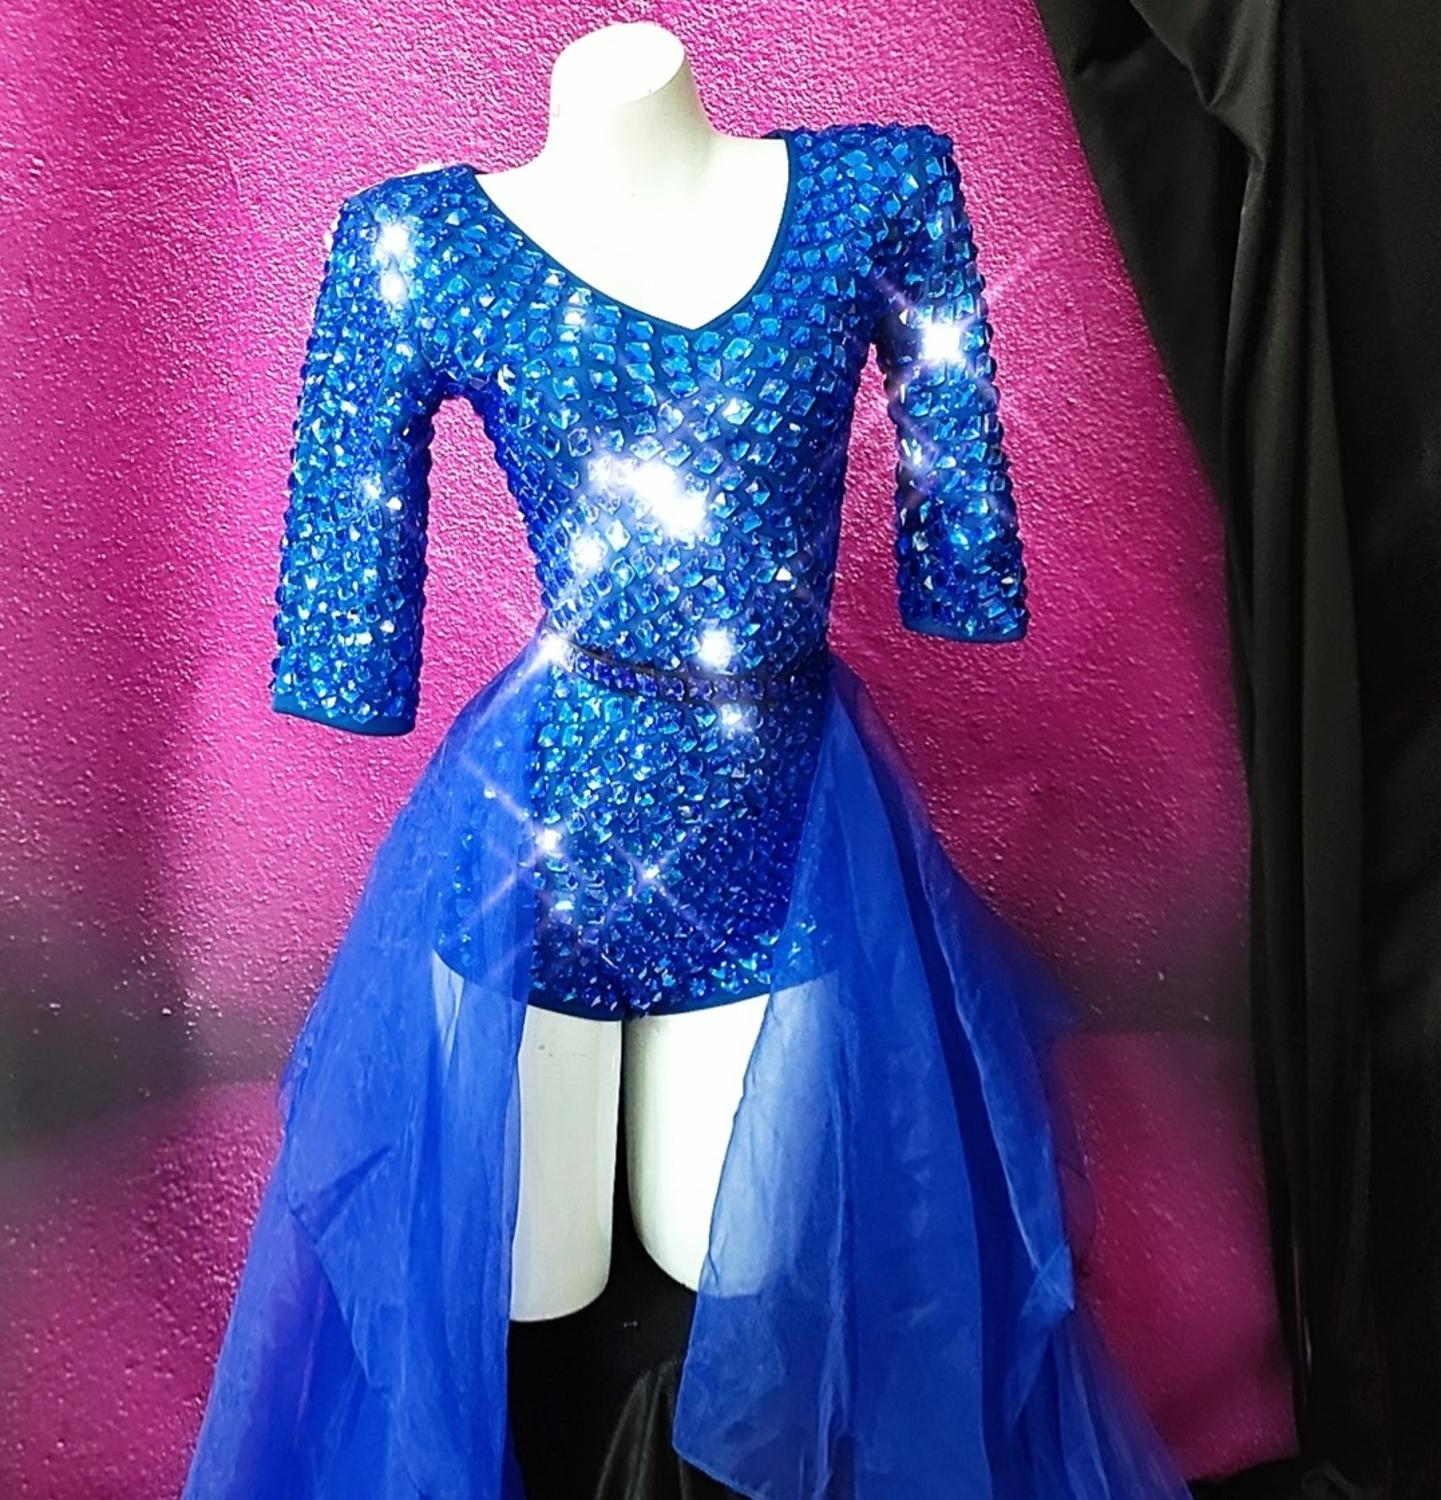 Shining Women Sexy Blue Stones Dance Shining Outfit Singer Dancer Stage Bodysuit Trains Costume Nightclub Prom Show Clothing Set